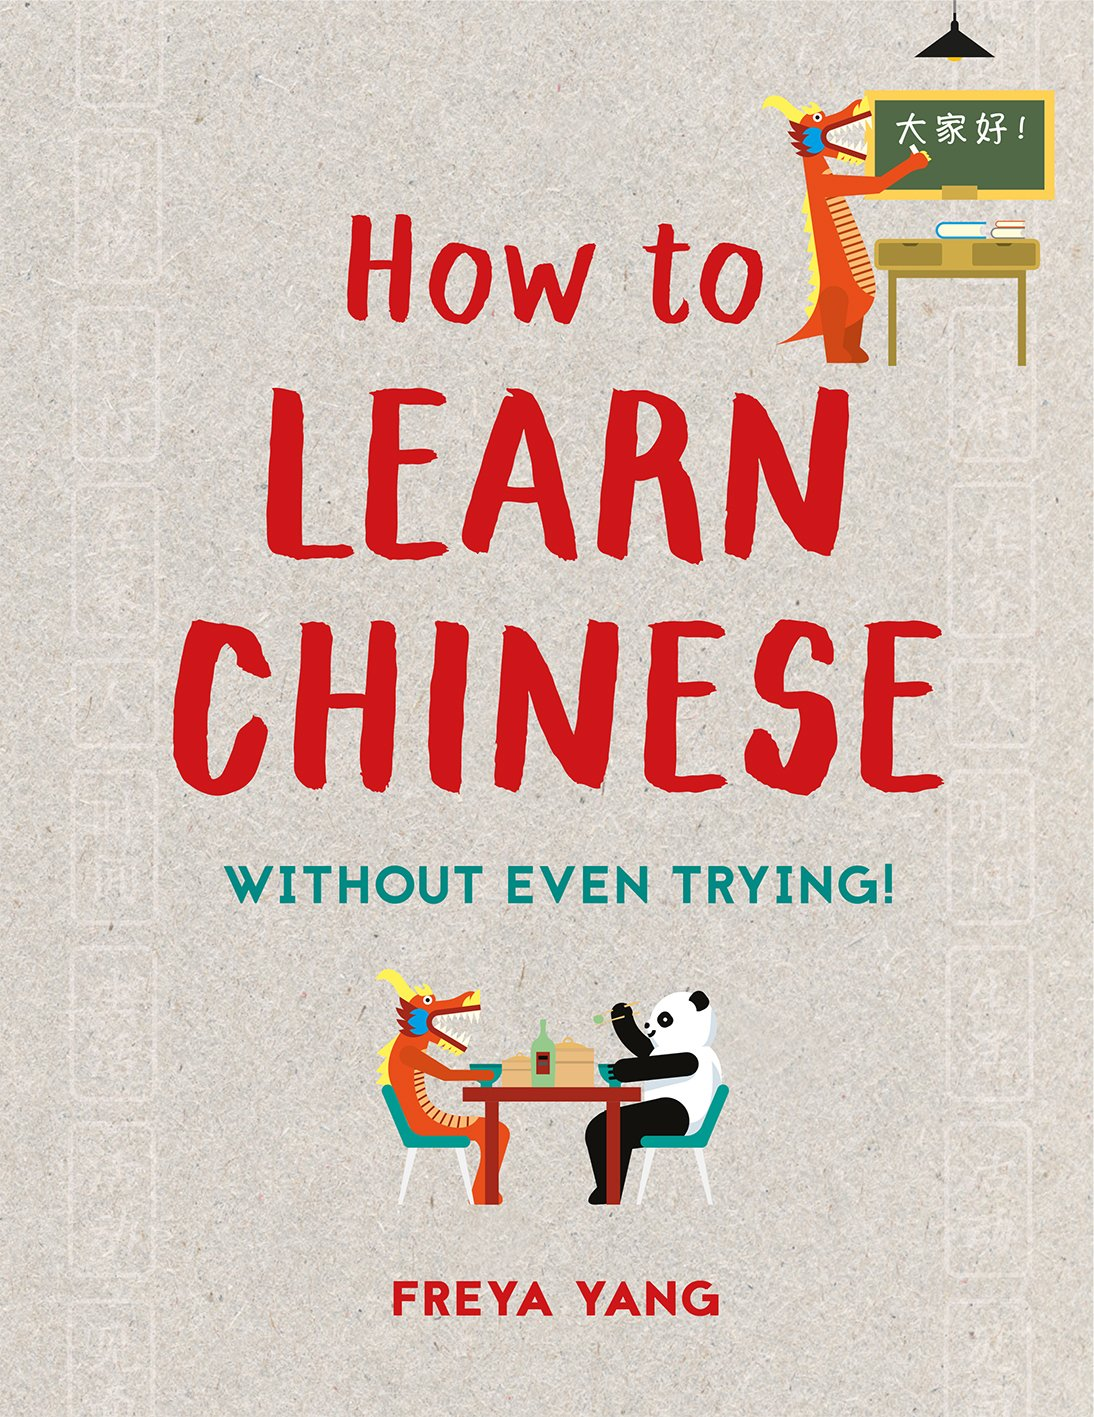 How to Learn Chinese (Without Even Trying!)